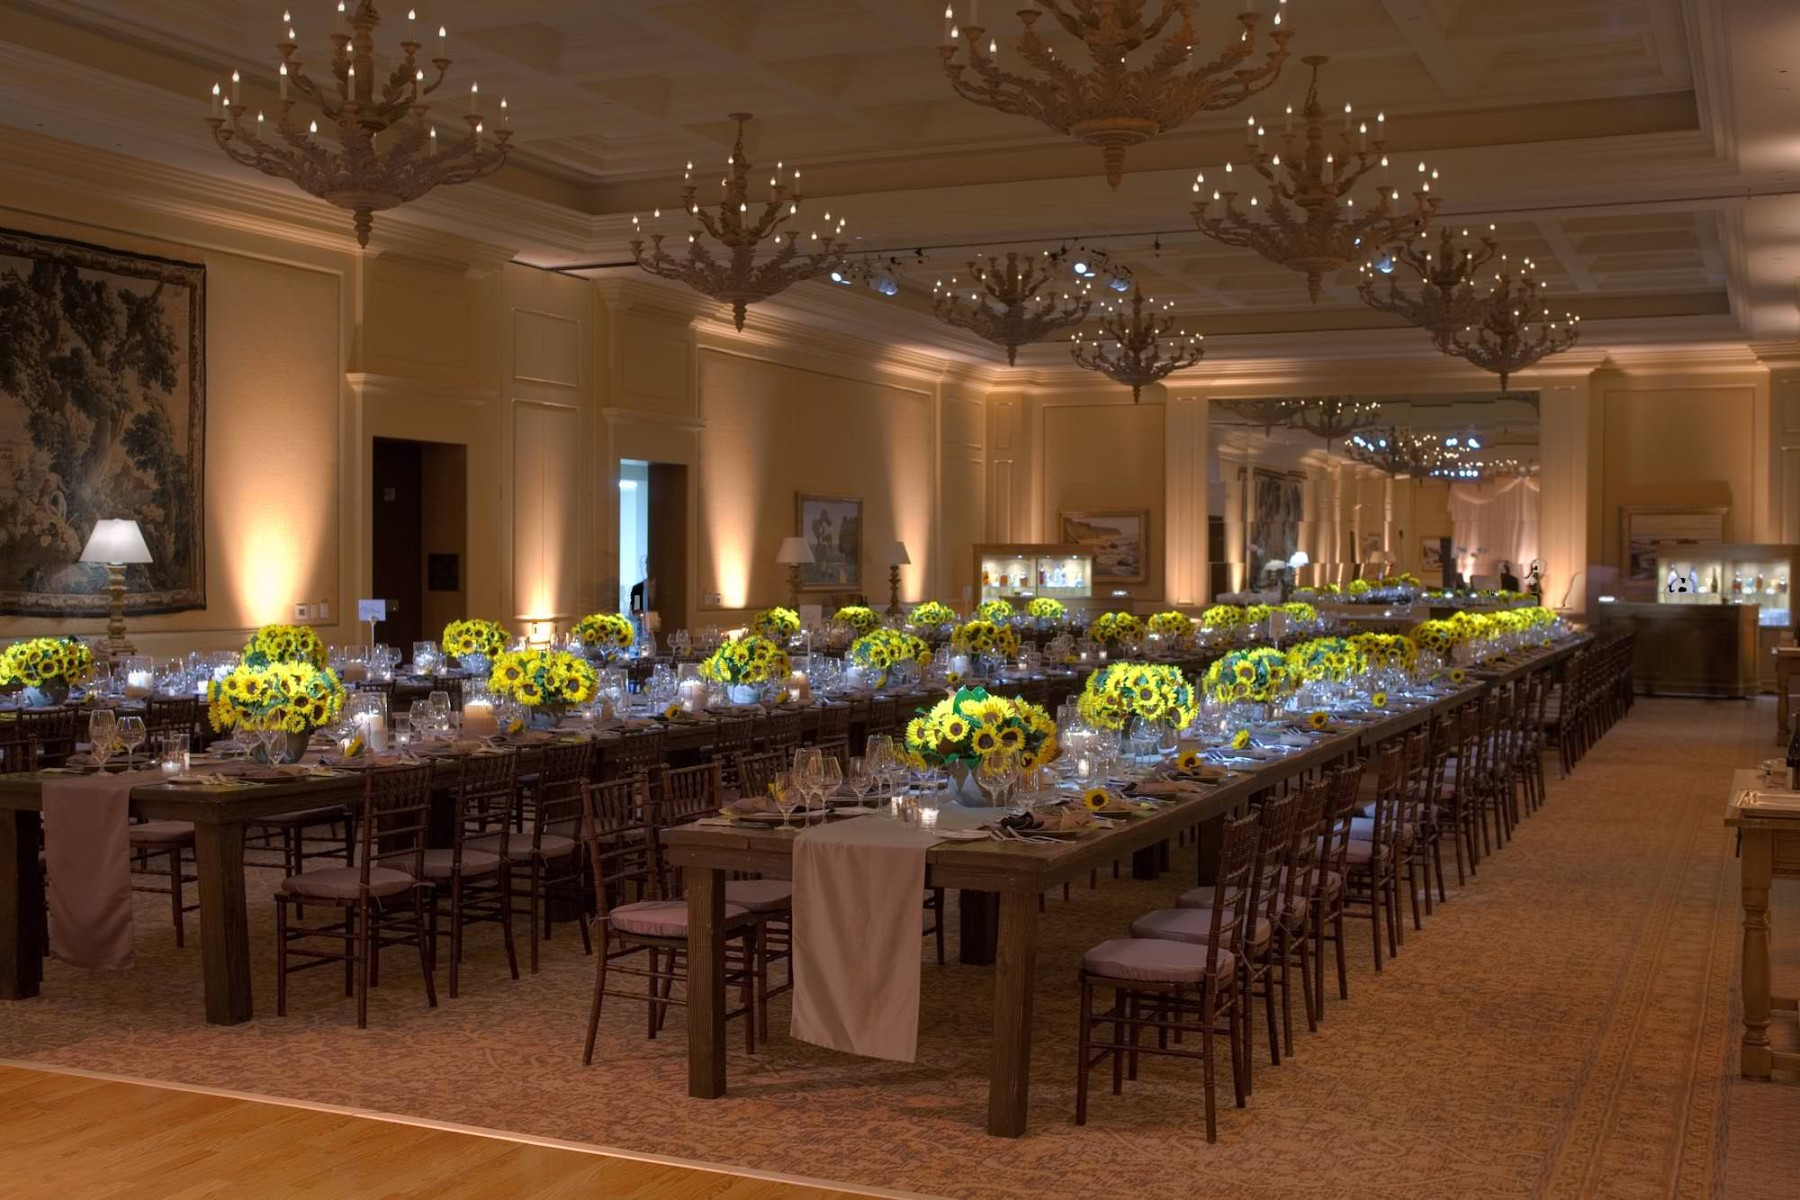 nisies-enchanted-florist-orange-county-Sunflowers-Cosentino-Rehearsal-Dinner-Pelican-Hill-Resort-event-4